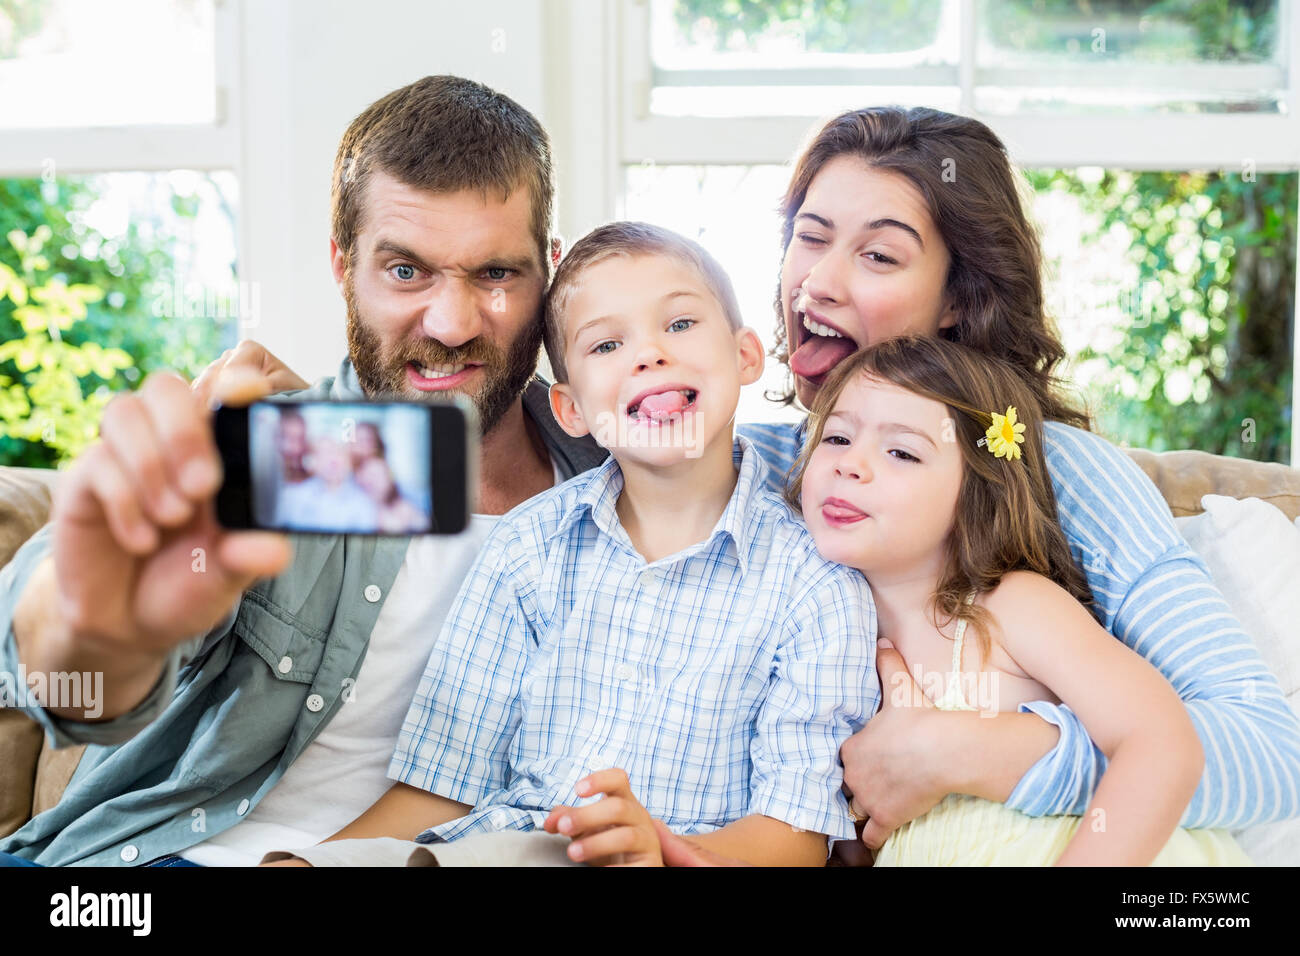 Happy family taking a selfie - Stock Image